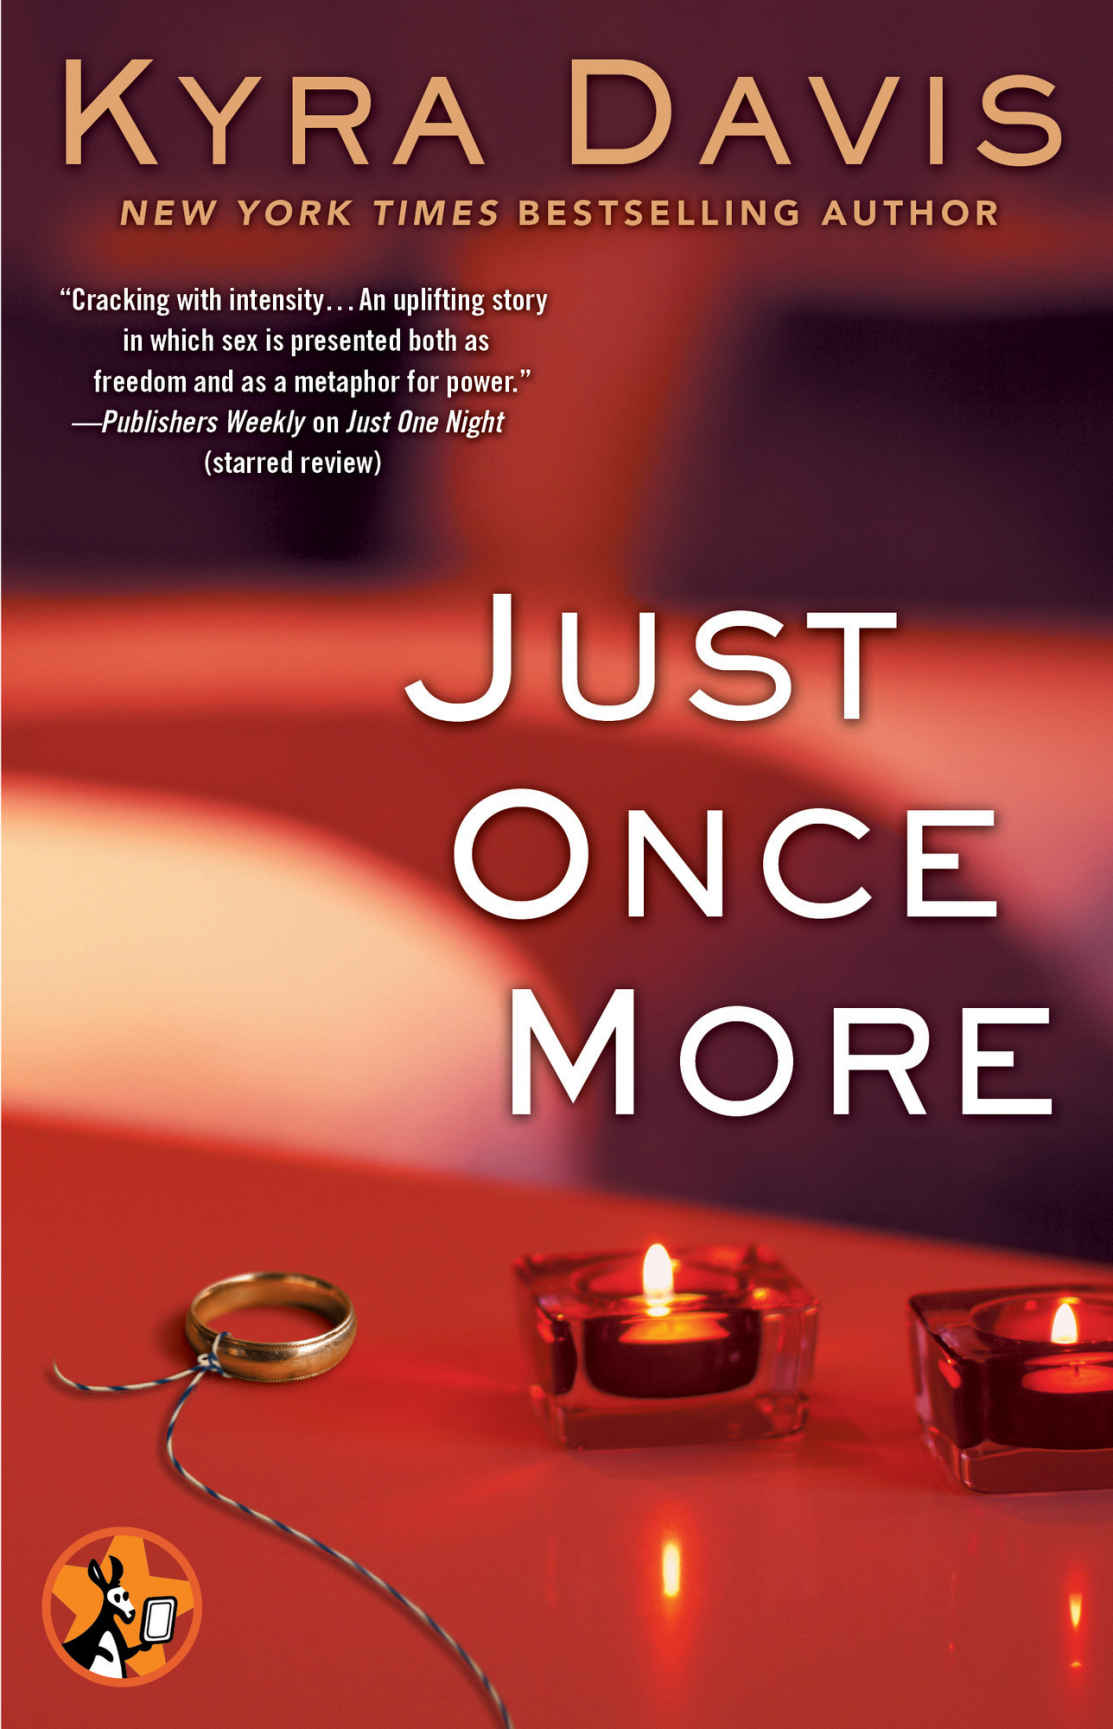 Just Once More (Just One Night series) - Kindle edition by Kyra Davis. Romance Kindle eBooks @ Amazon.com.